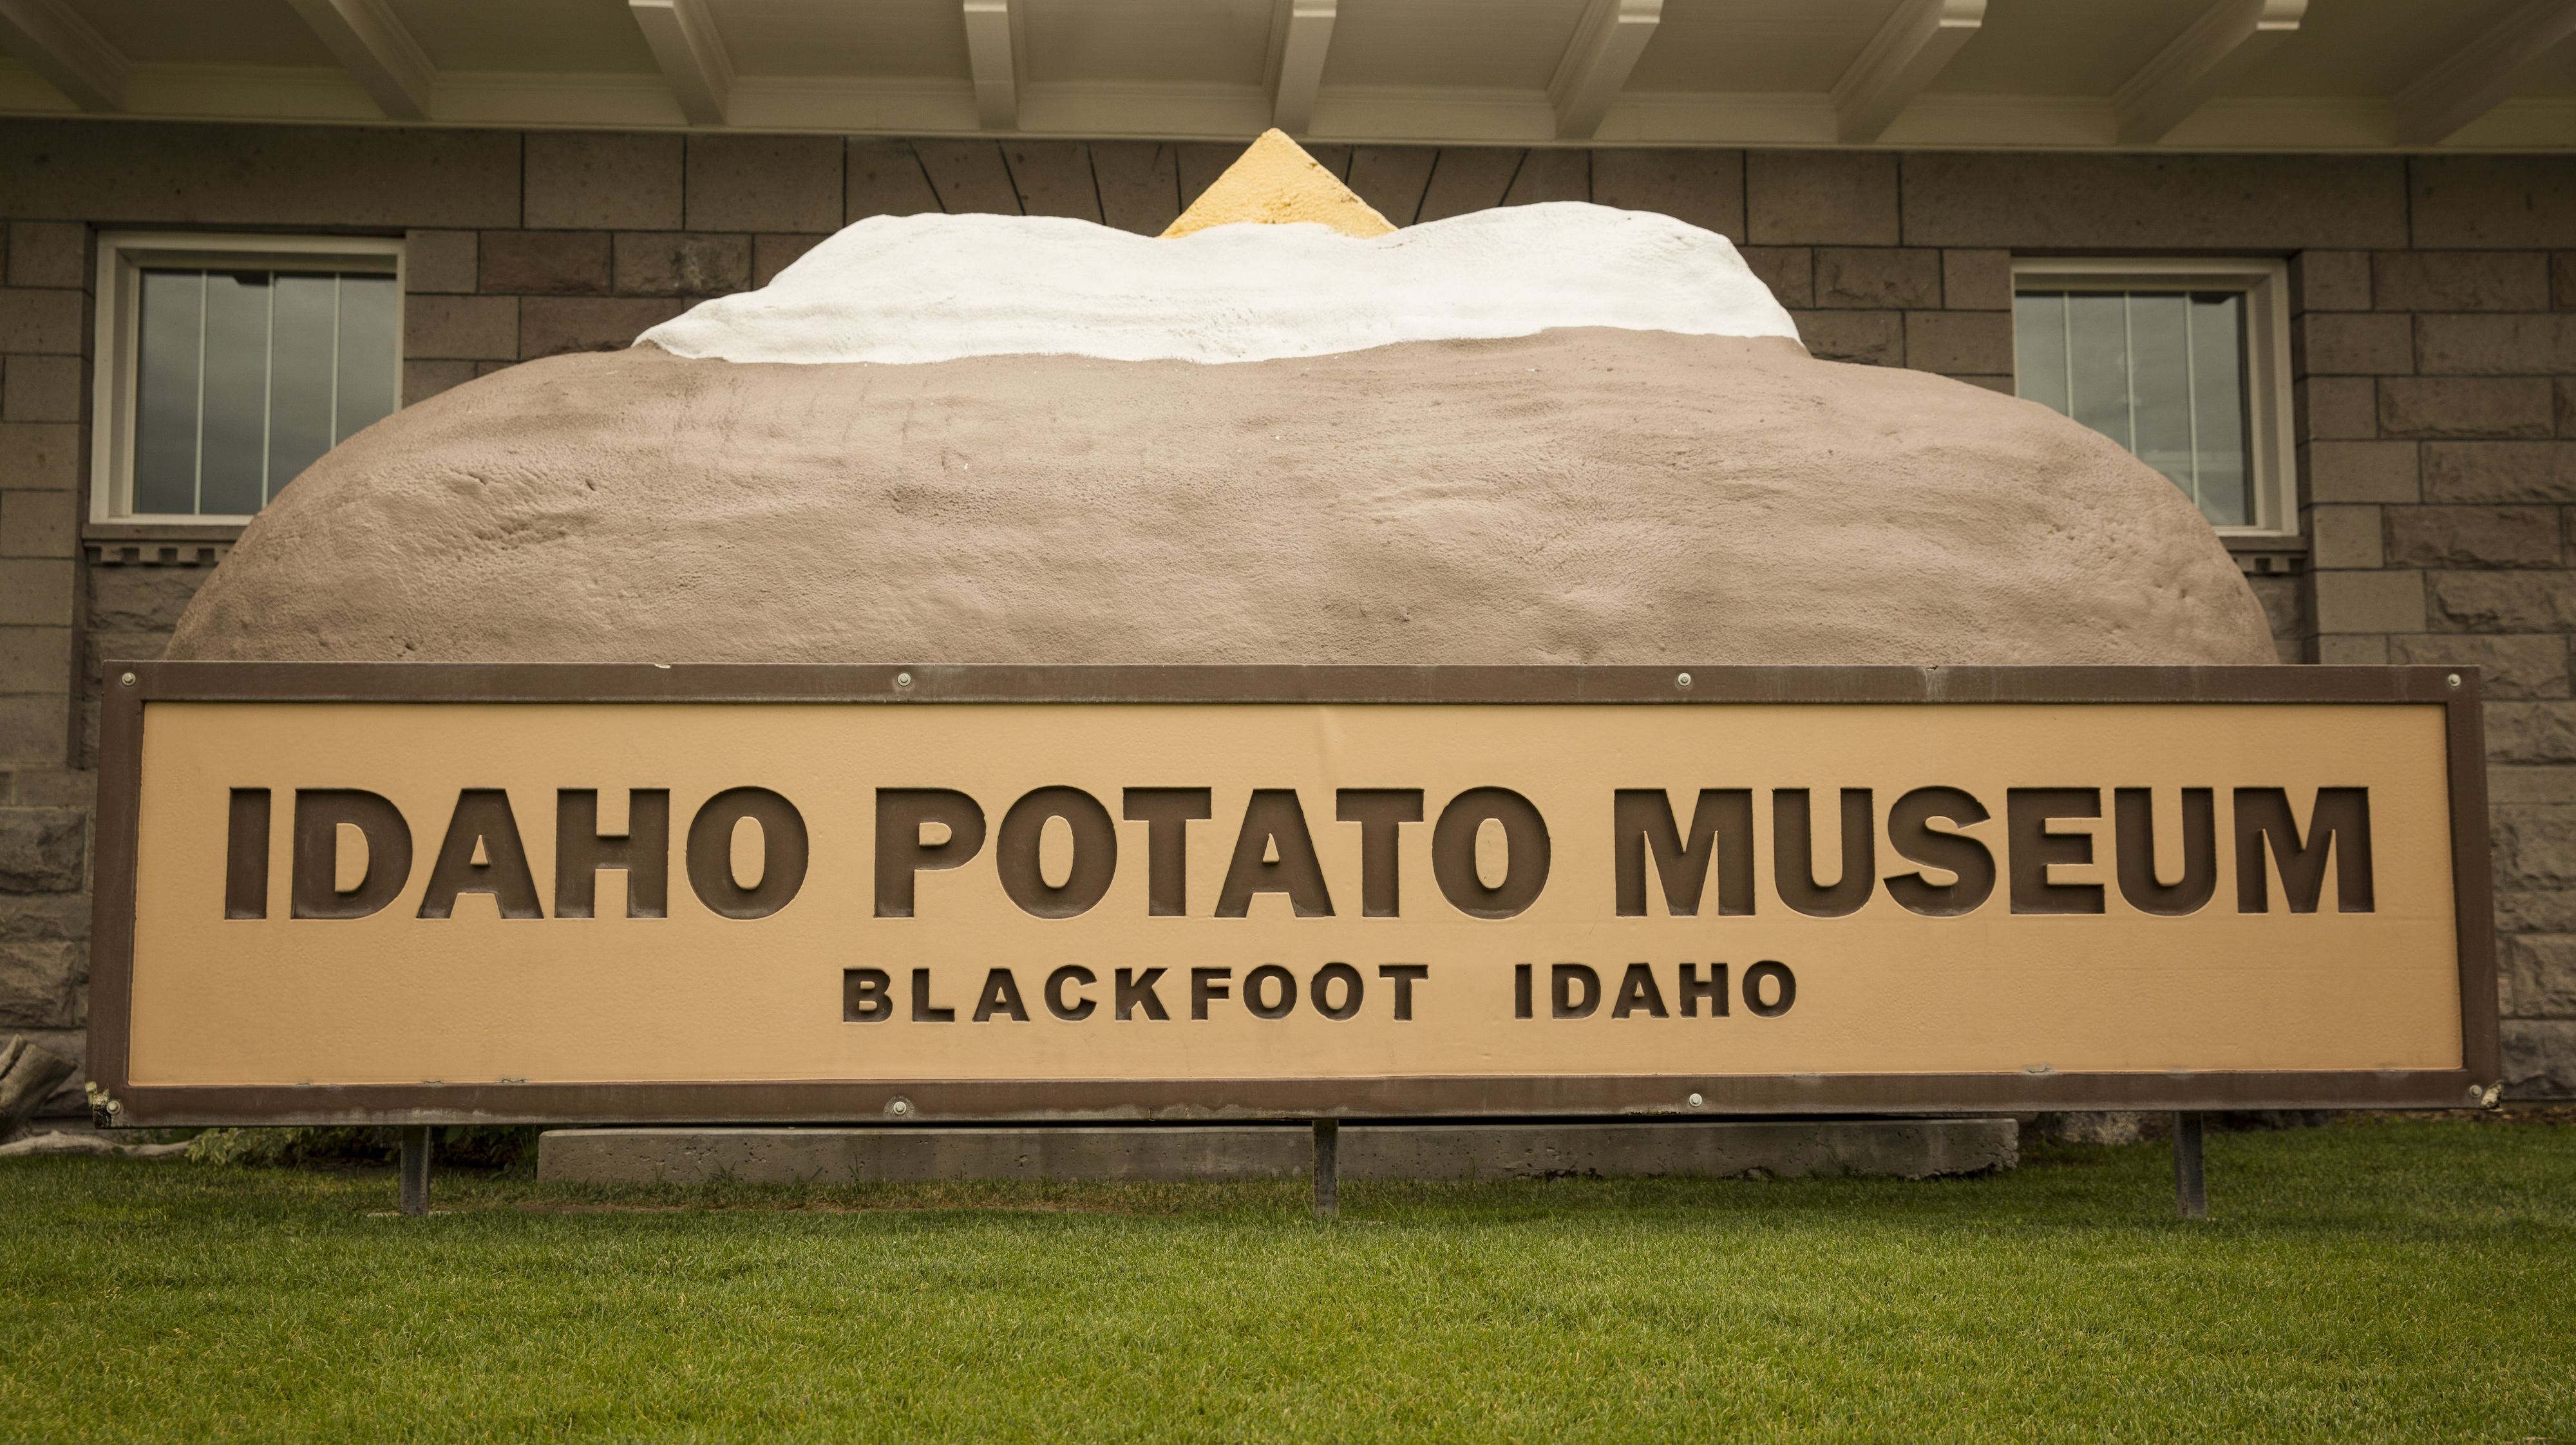 The Best Offbeat Museums to Visit in All 50 States (And Washington, D.C.)